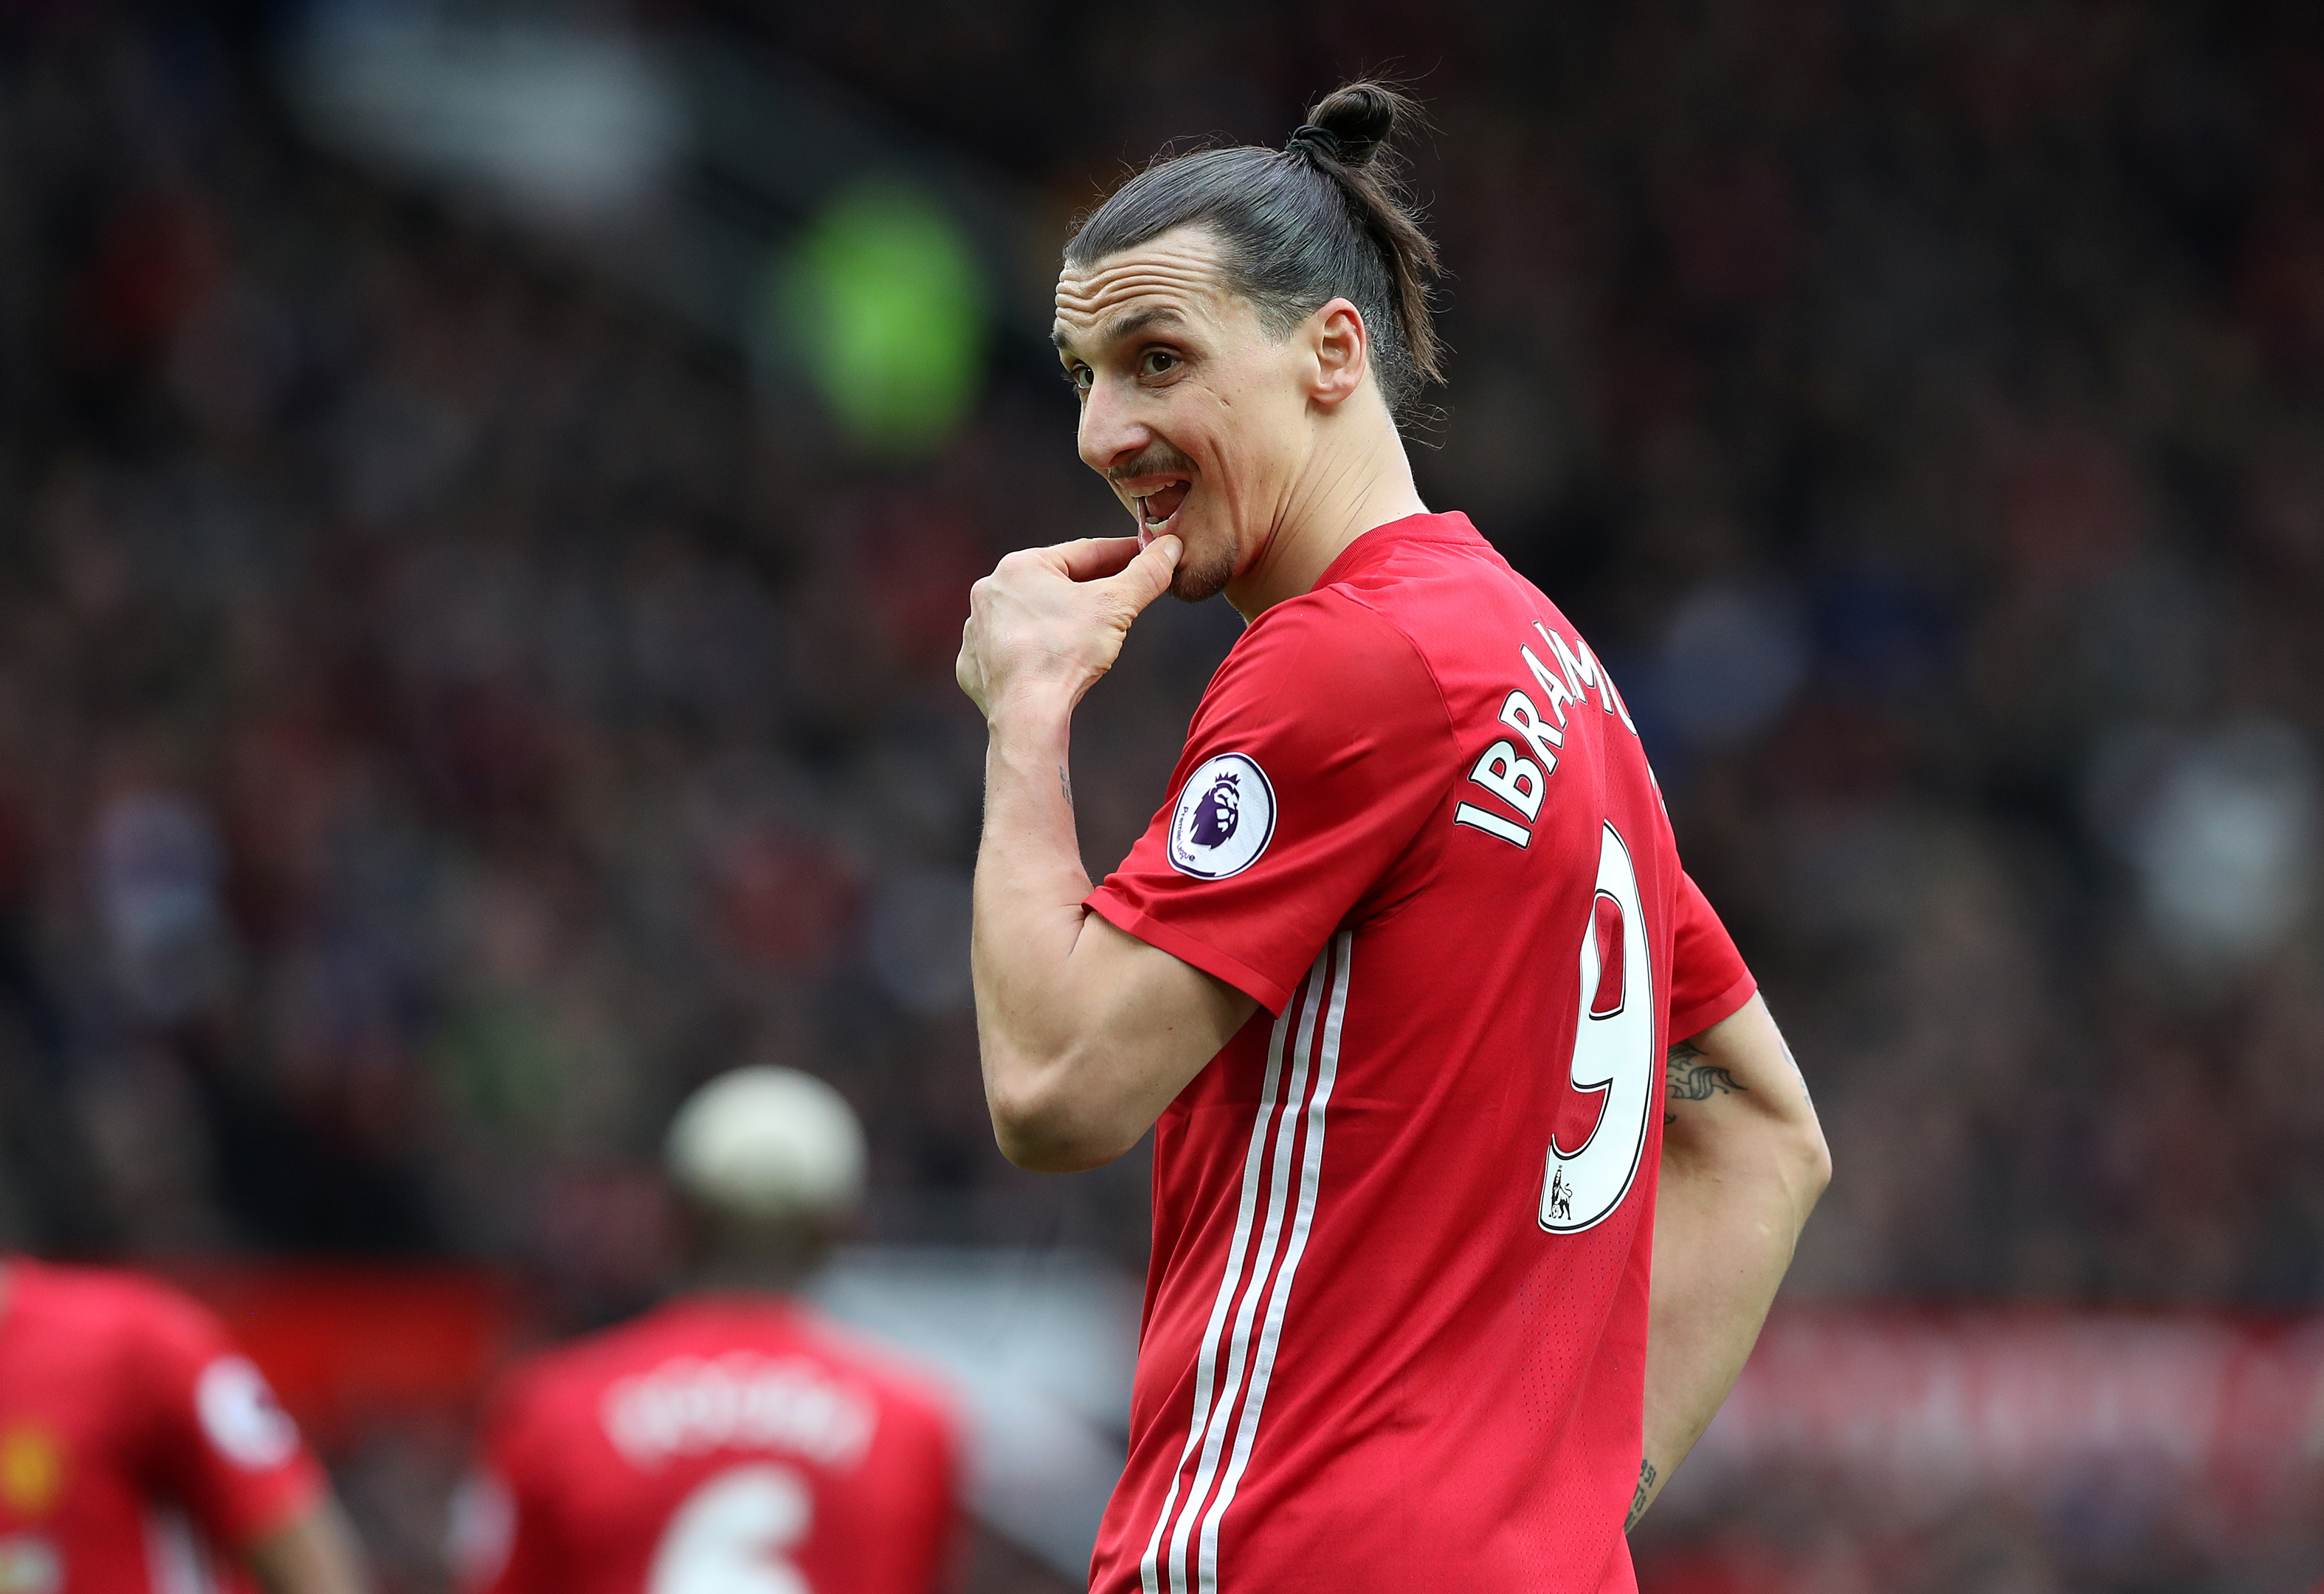 Manchester United's Zlatan Ibrahimovic (Getty Images)